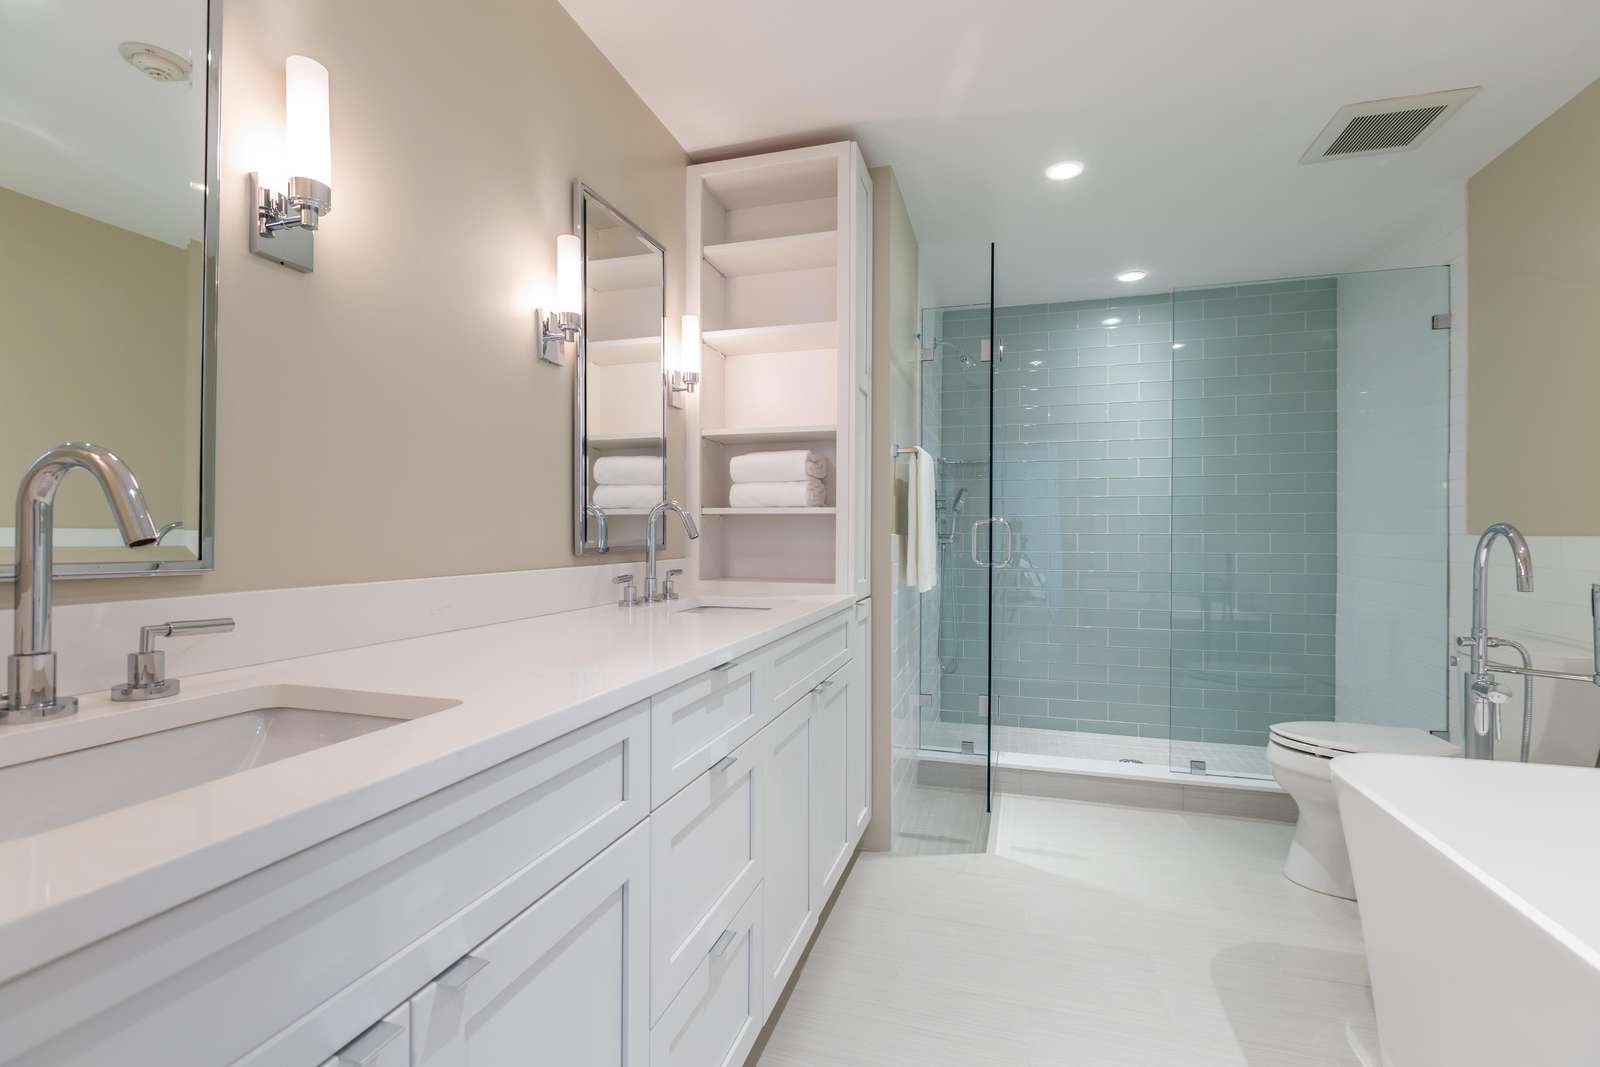 Master bathroom in 2 bedroom apartment on the 2nd floor